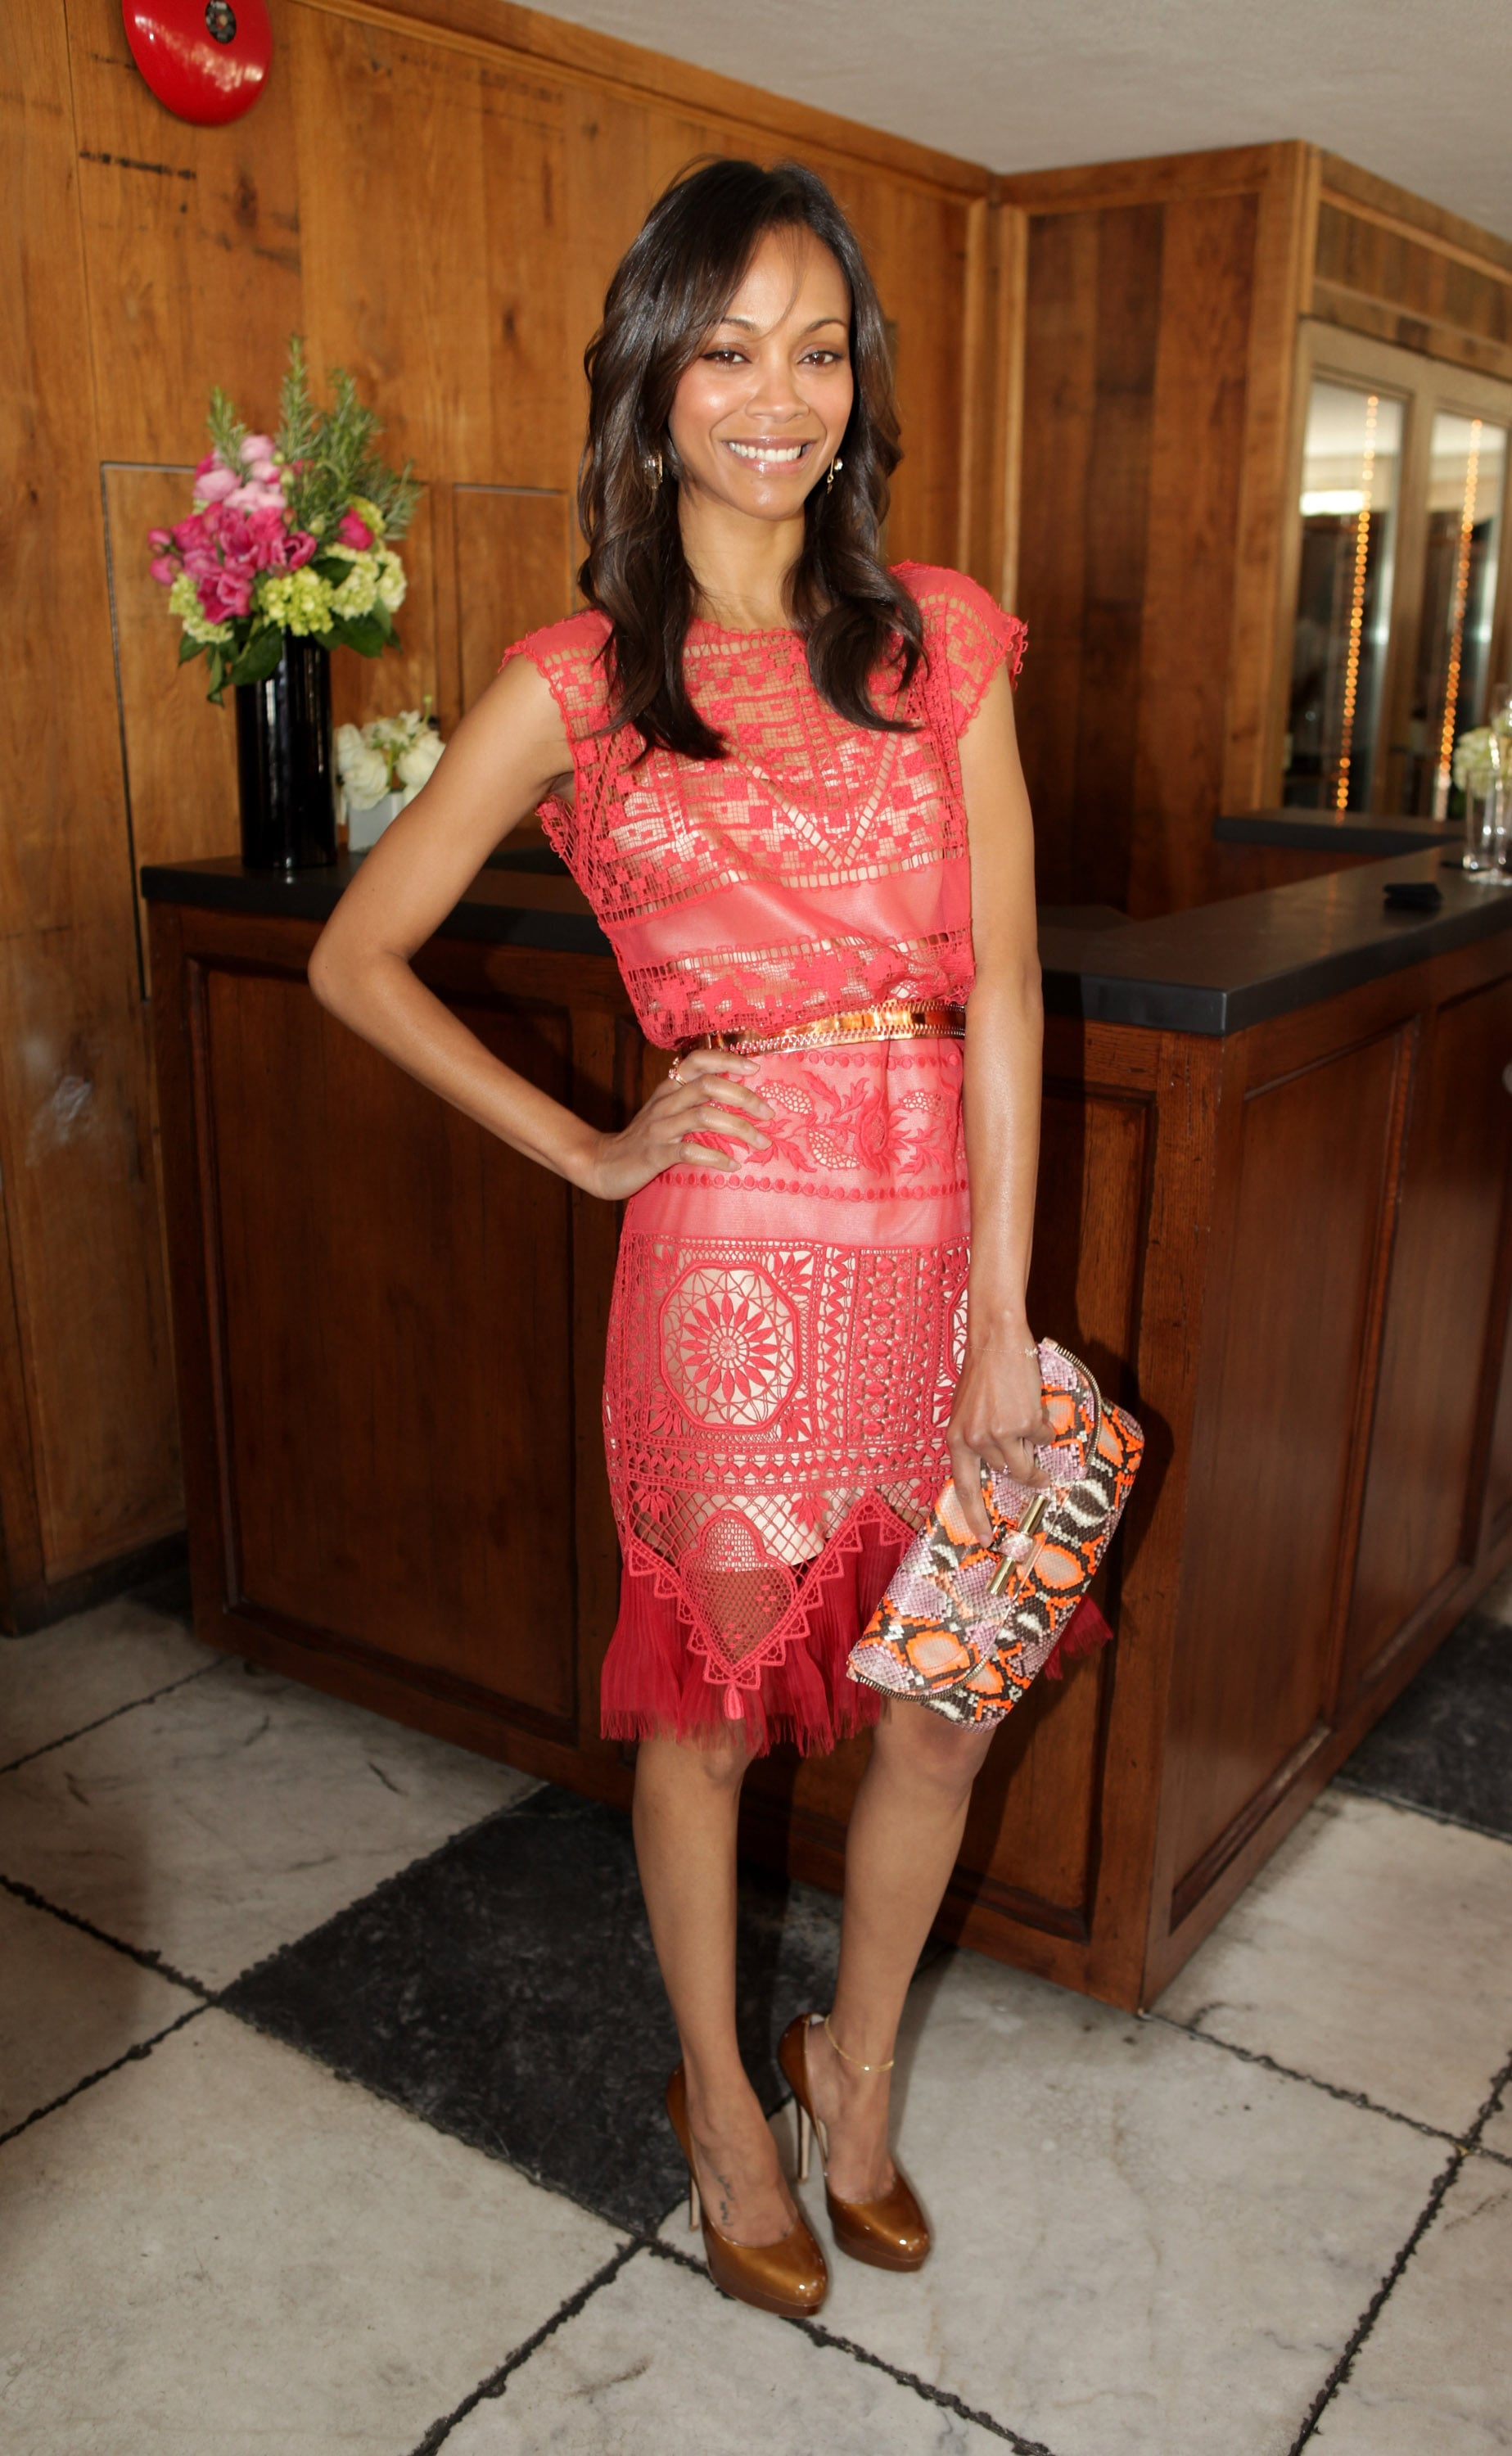 How Summer-perfect was this coral and crochet-inspired Alexis Mabille Couture dress? Zoe chose this bright number for The Hollywood Reporter's 25 Most Powerful Stylists luncheon in March 2012.